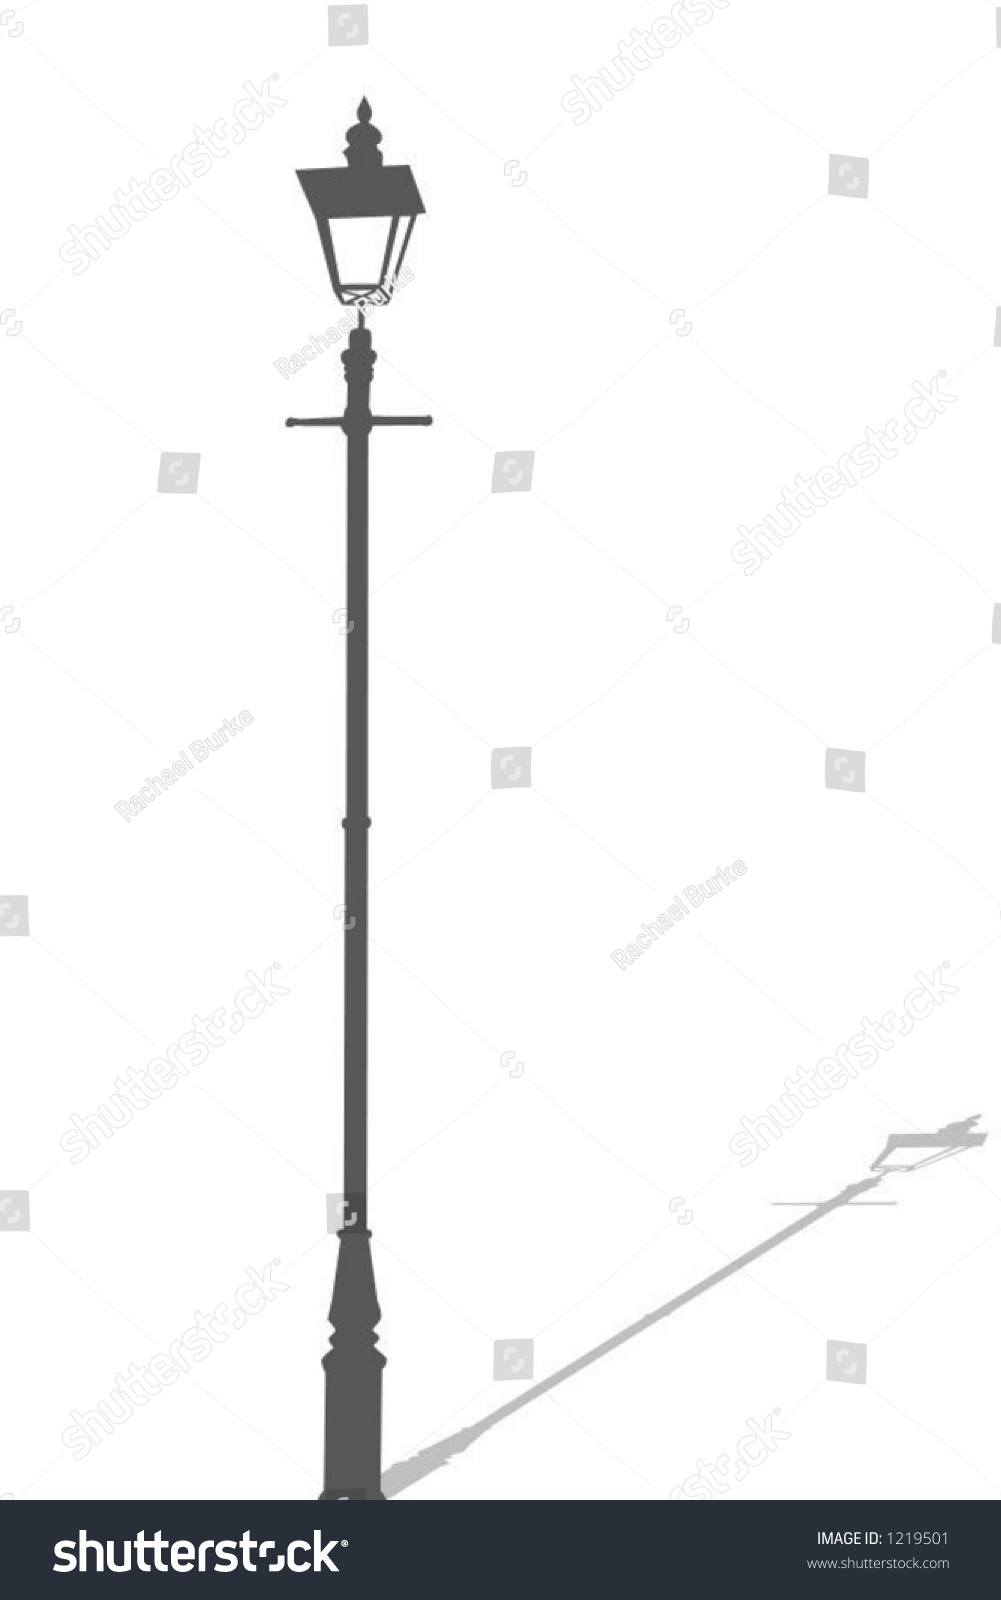 Lamp Post Vector Illustration Stock Vector 1219501 - Shutterstock for Street Lamp Post Vector  110zmd